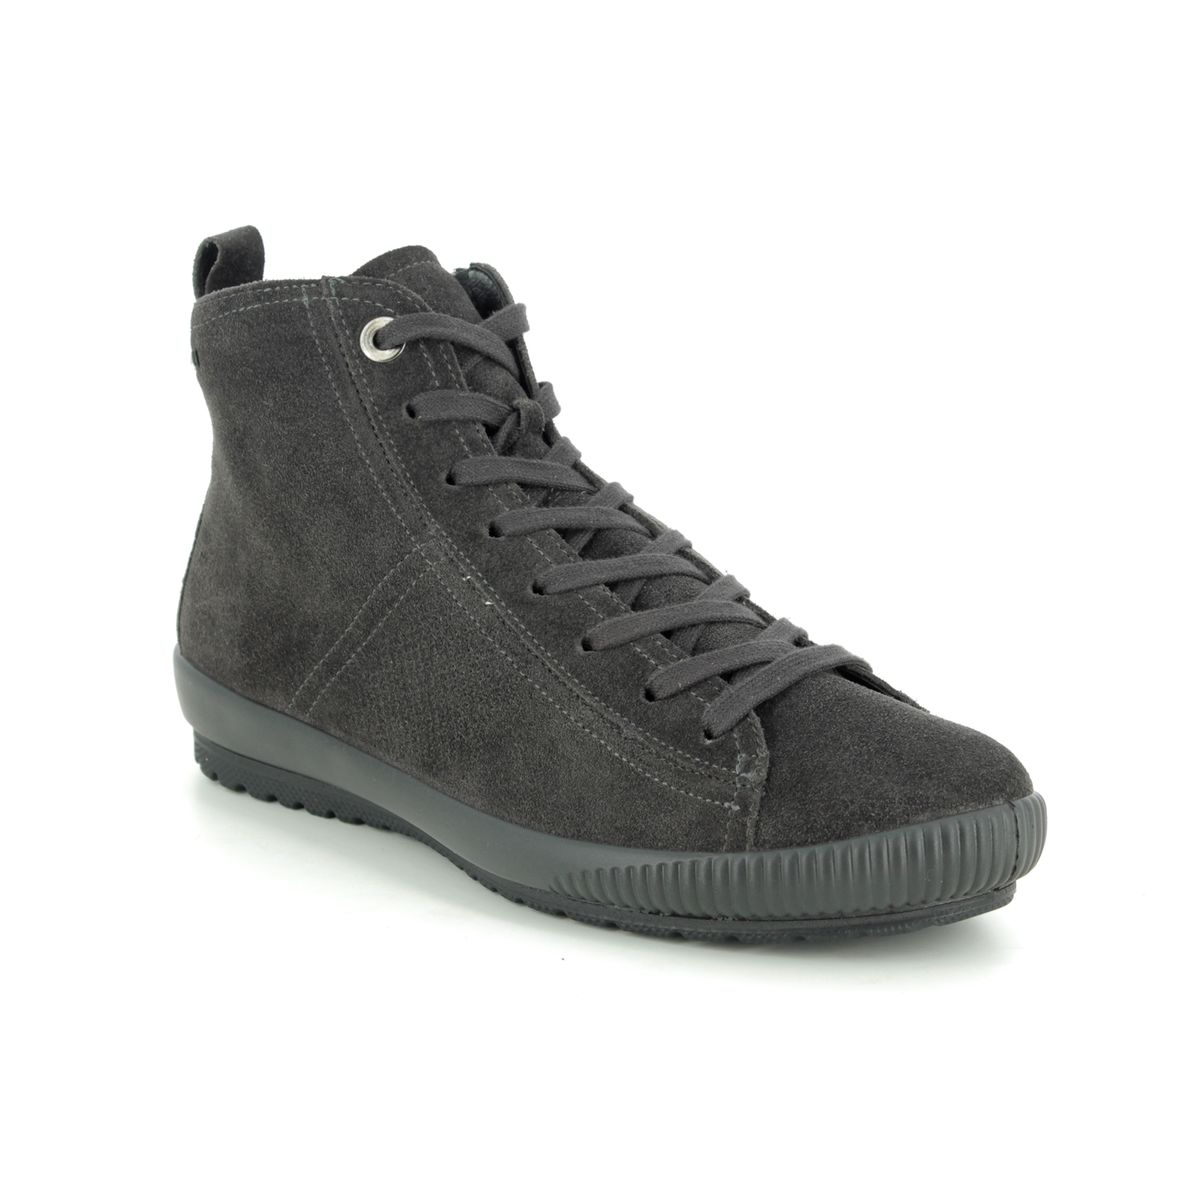 first look lace up in best website 09615/08 Tanaro 4 Hi Gtx at Begg Shoes & Bags